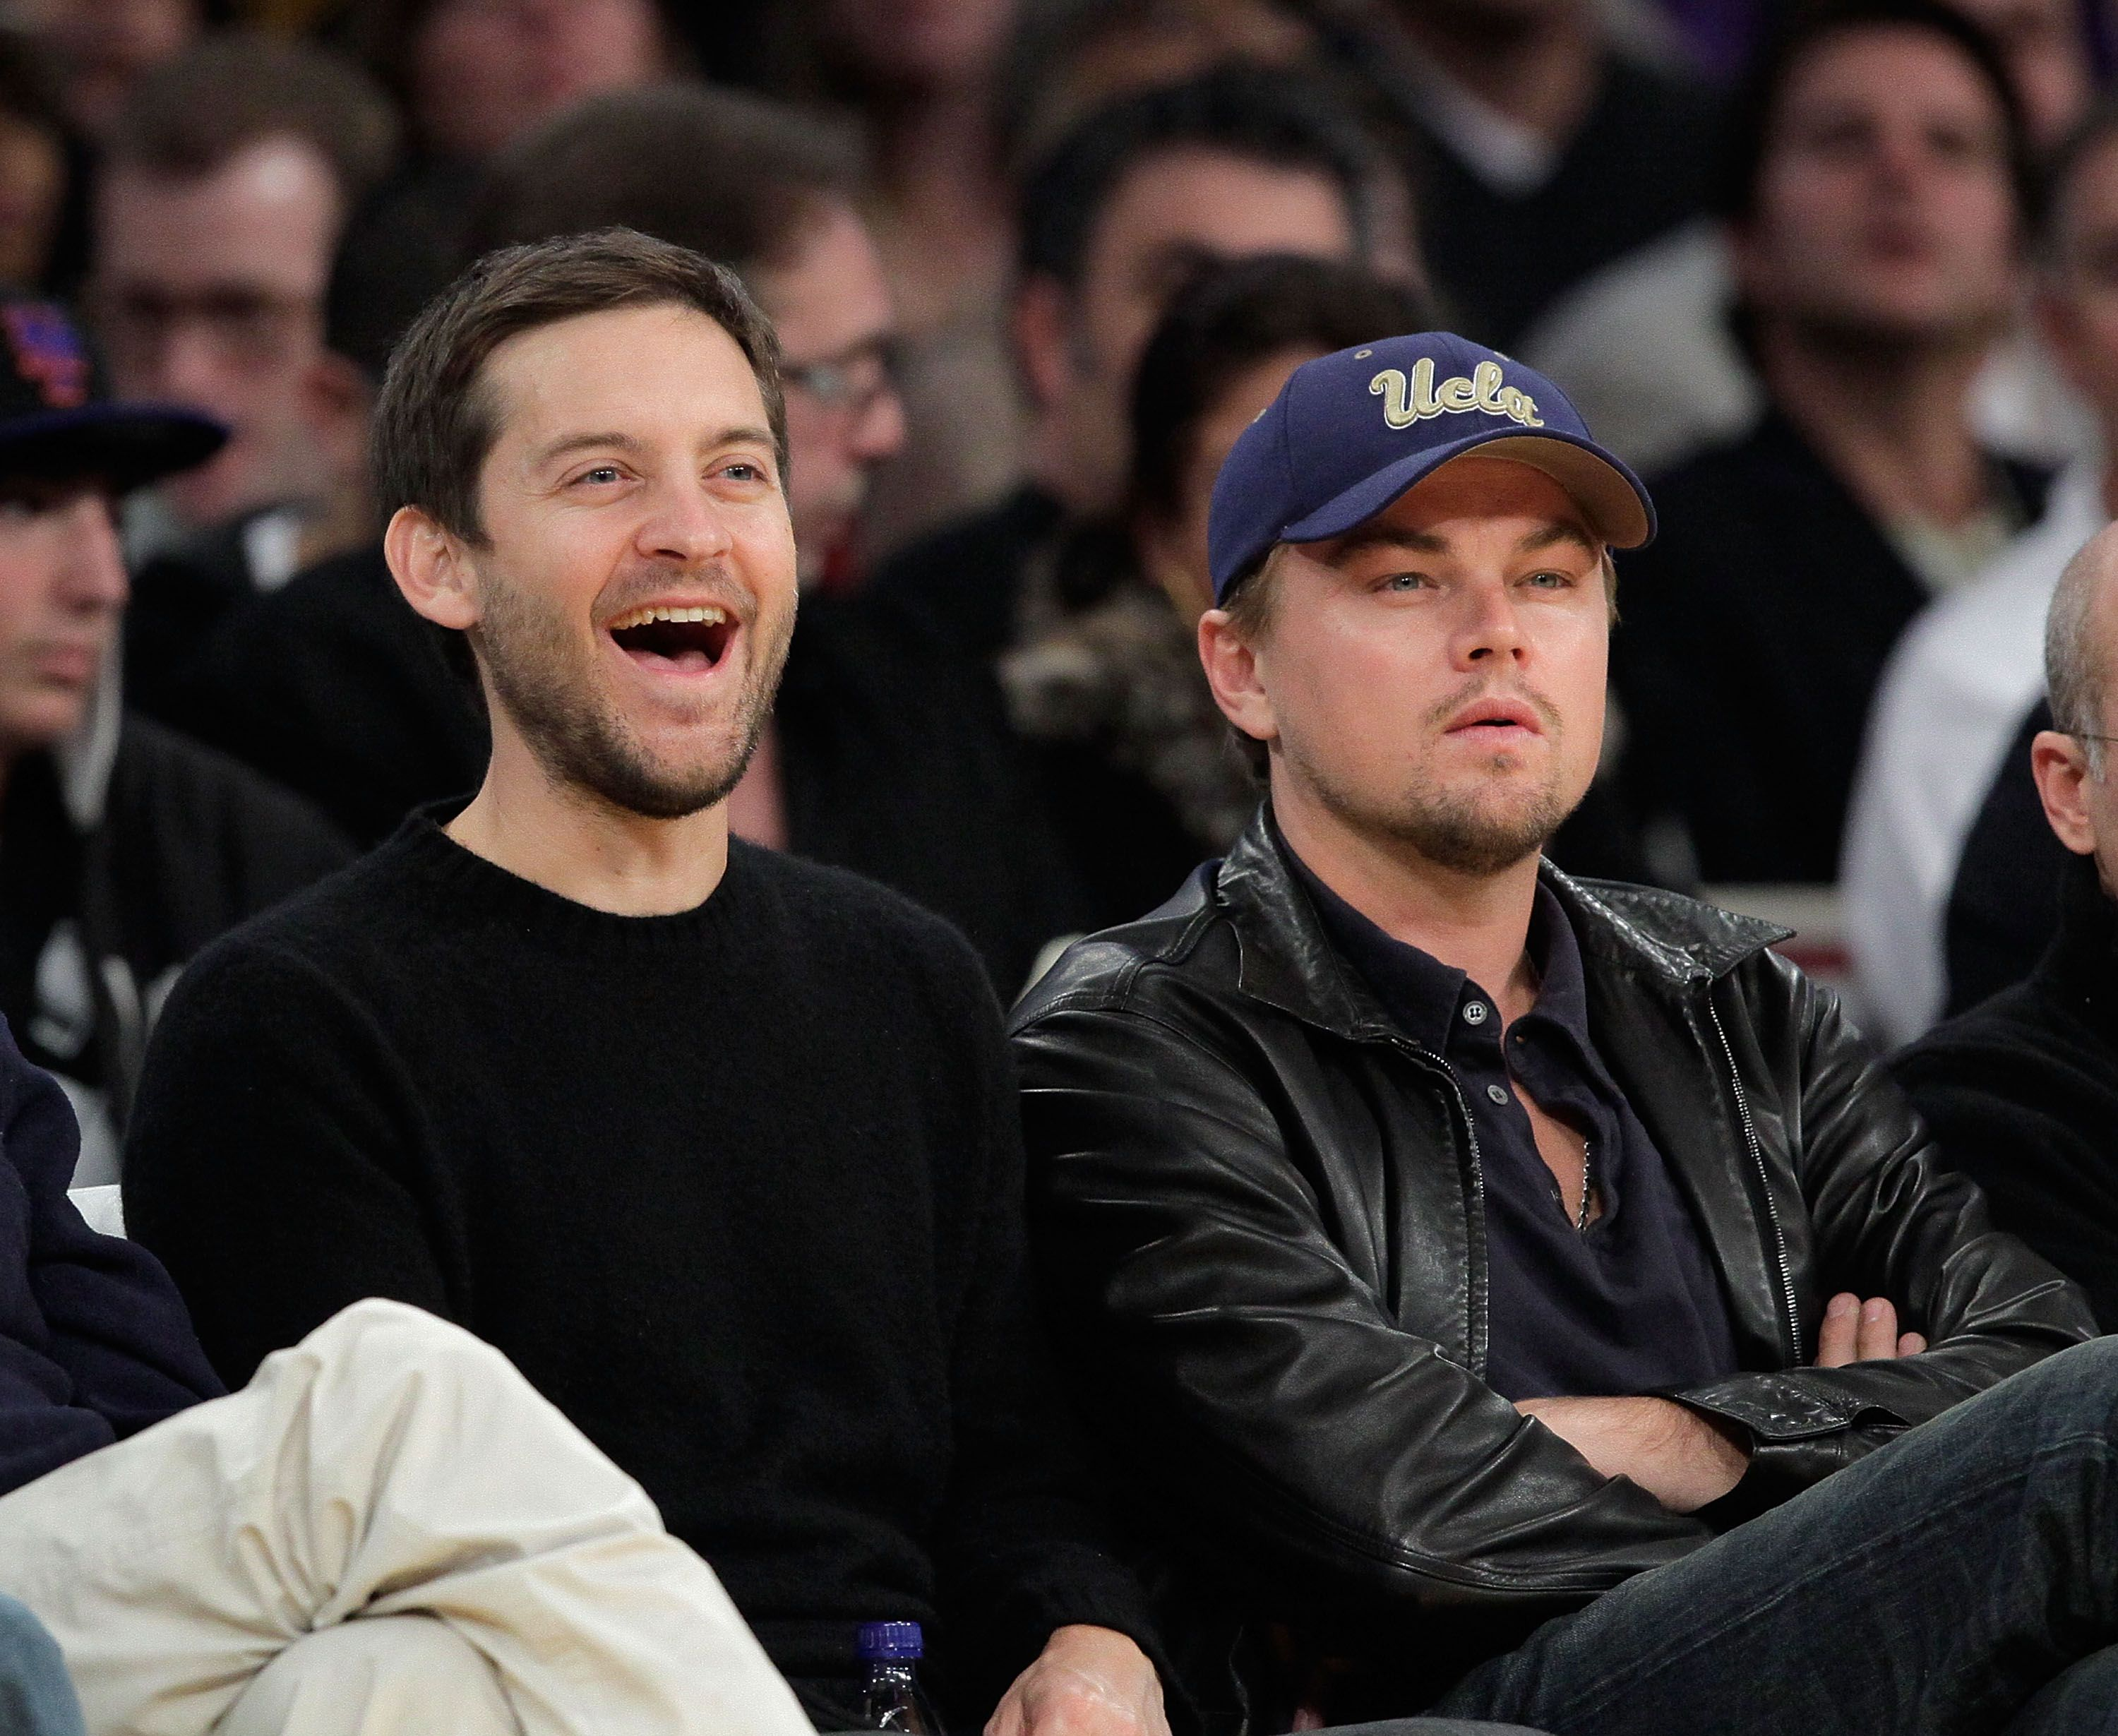 Tobey Maguire  and Leonardo DiCaprio  attend a game between the Oklahoma City Thunder and the Los Angeles Lakers / Getty Images